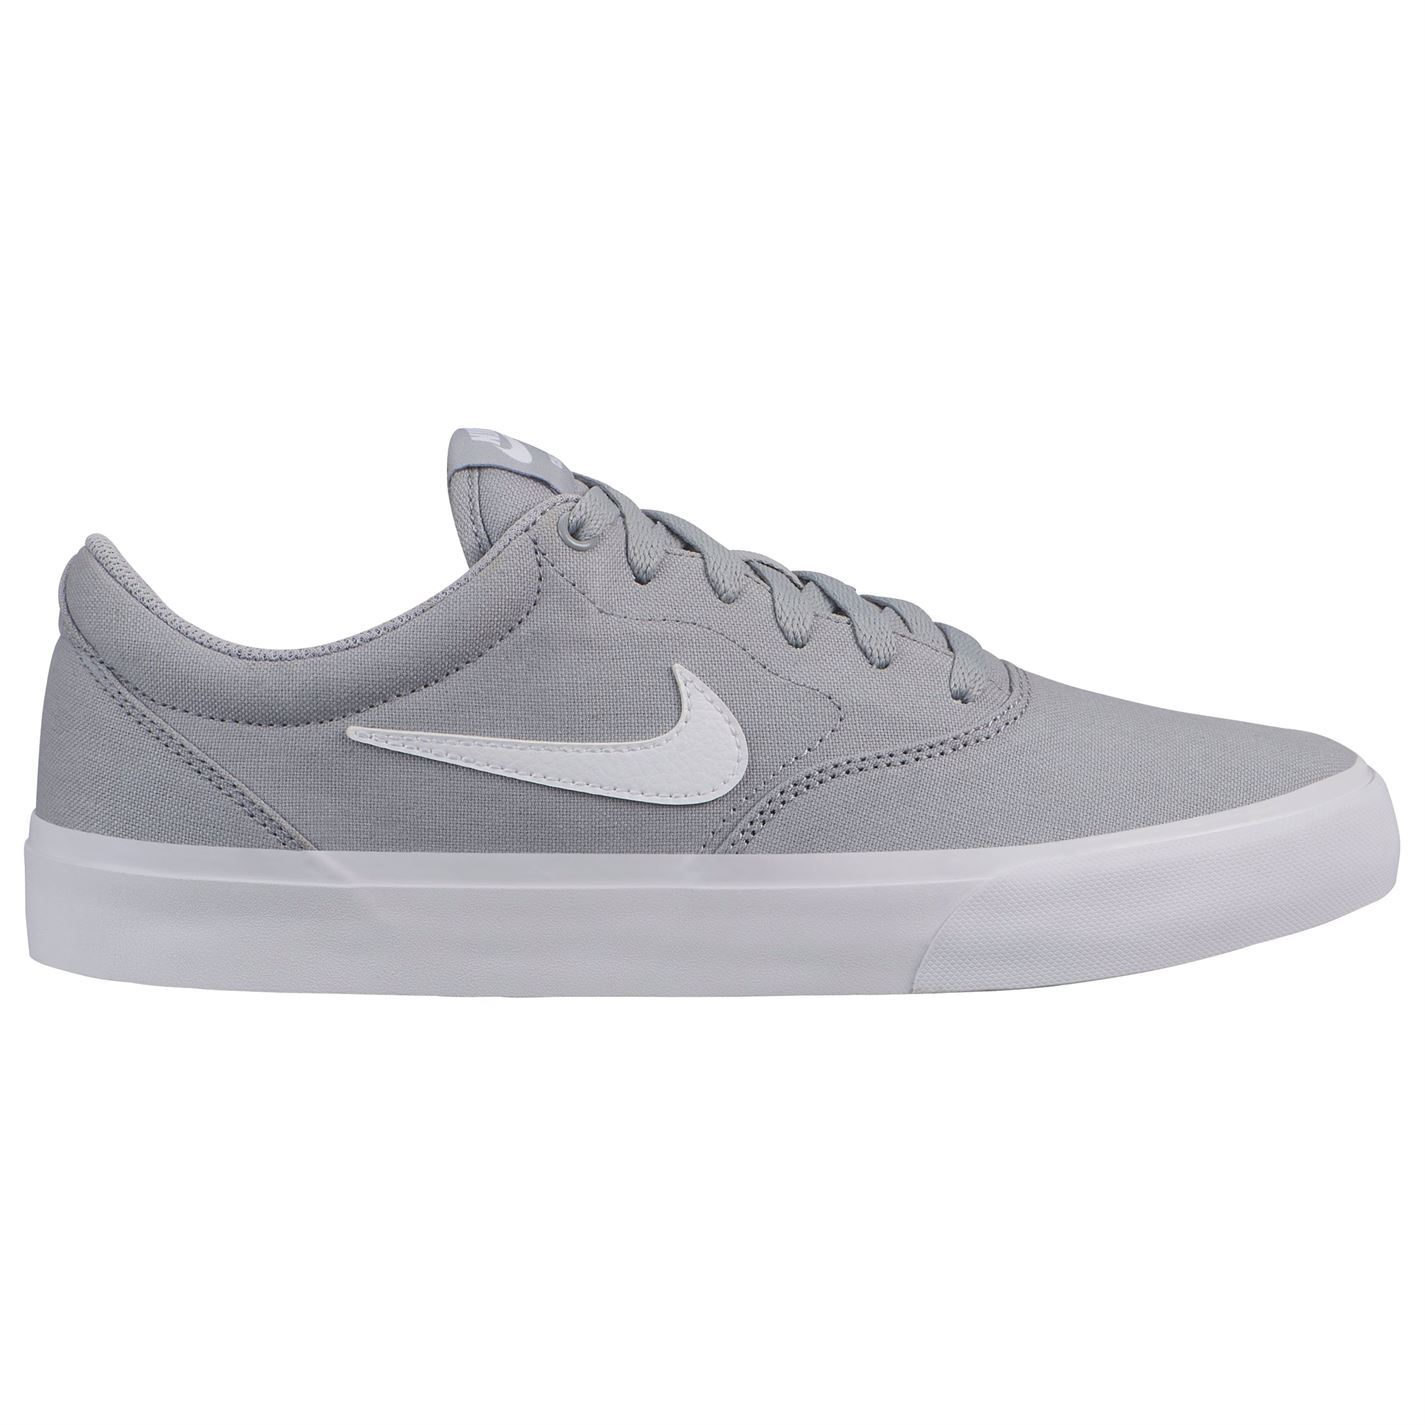 Details about Nike SB Charge Solarsoft Mens Trainers Shoes Casual Footwear Sneakers